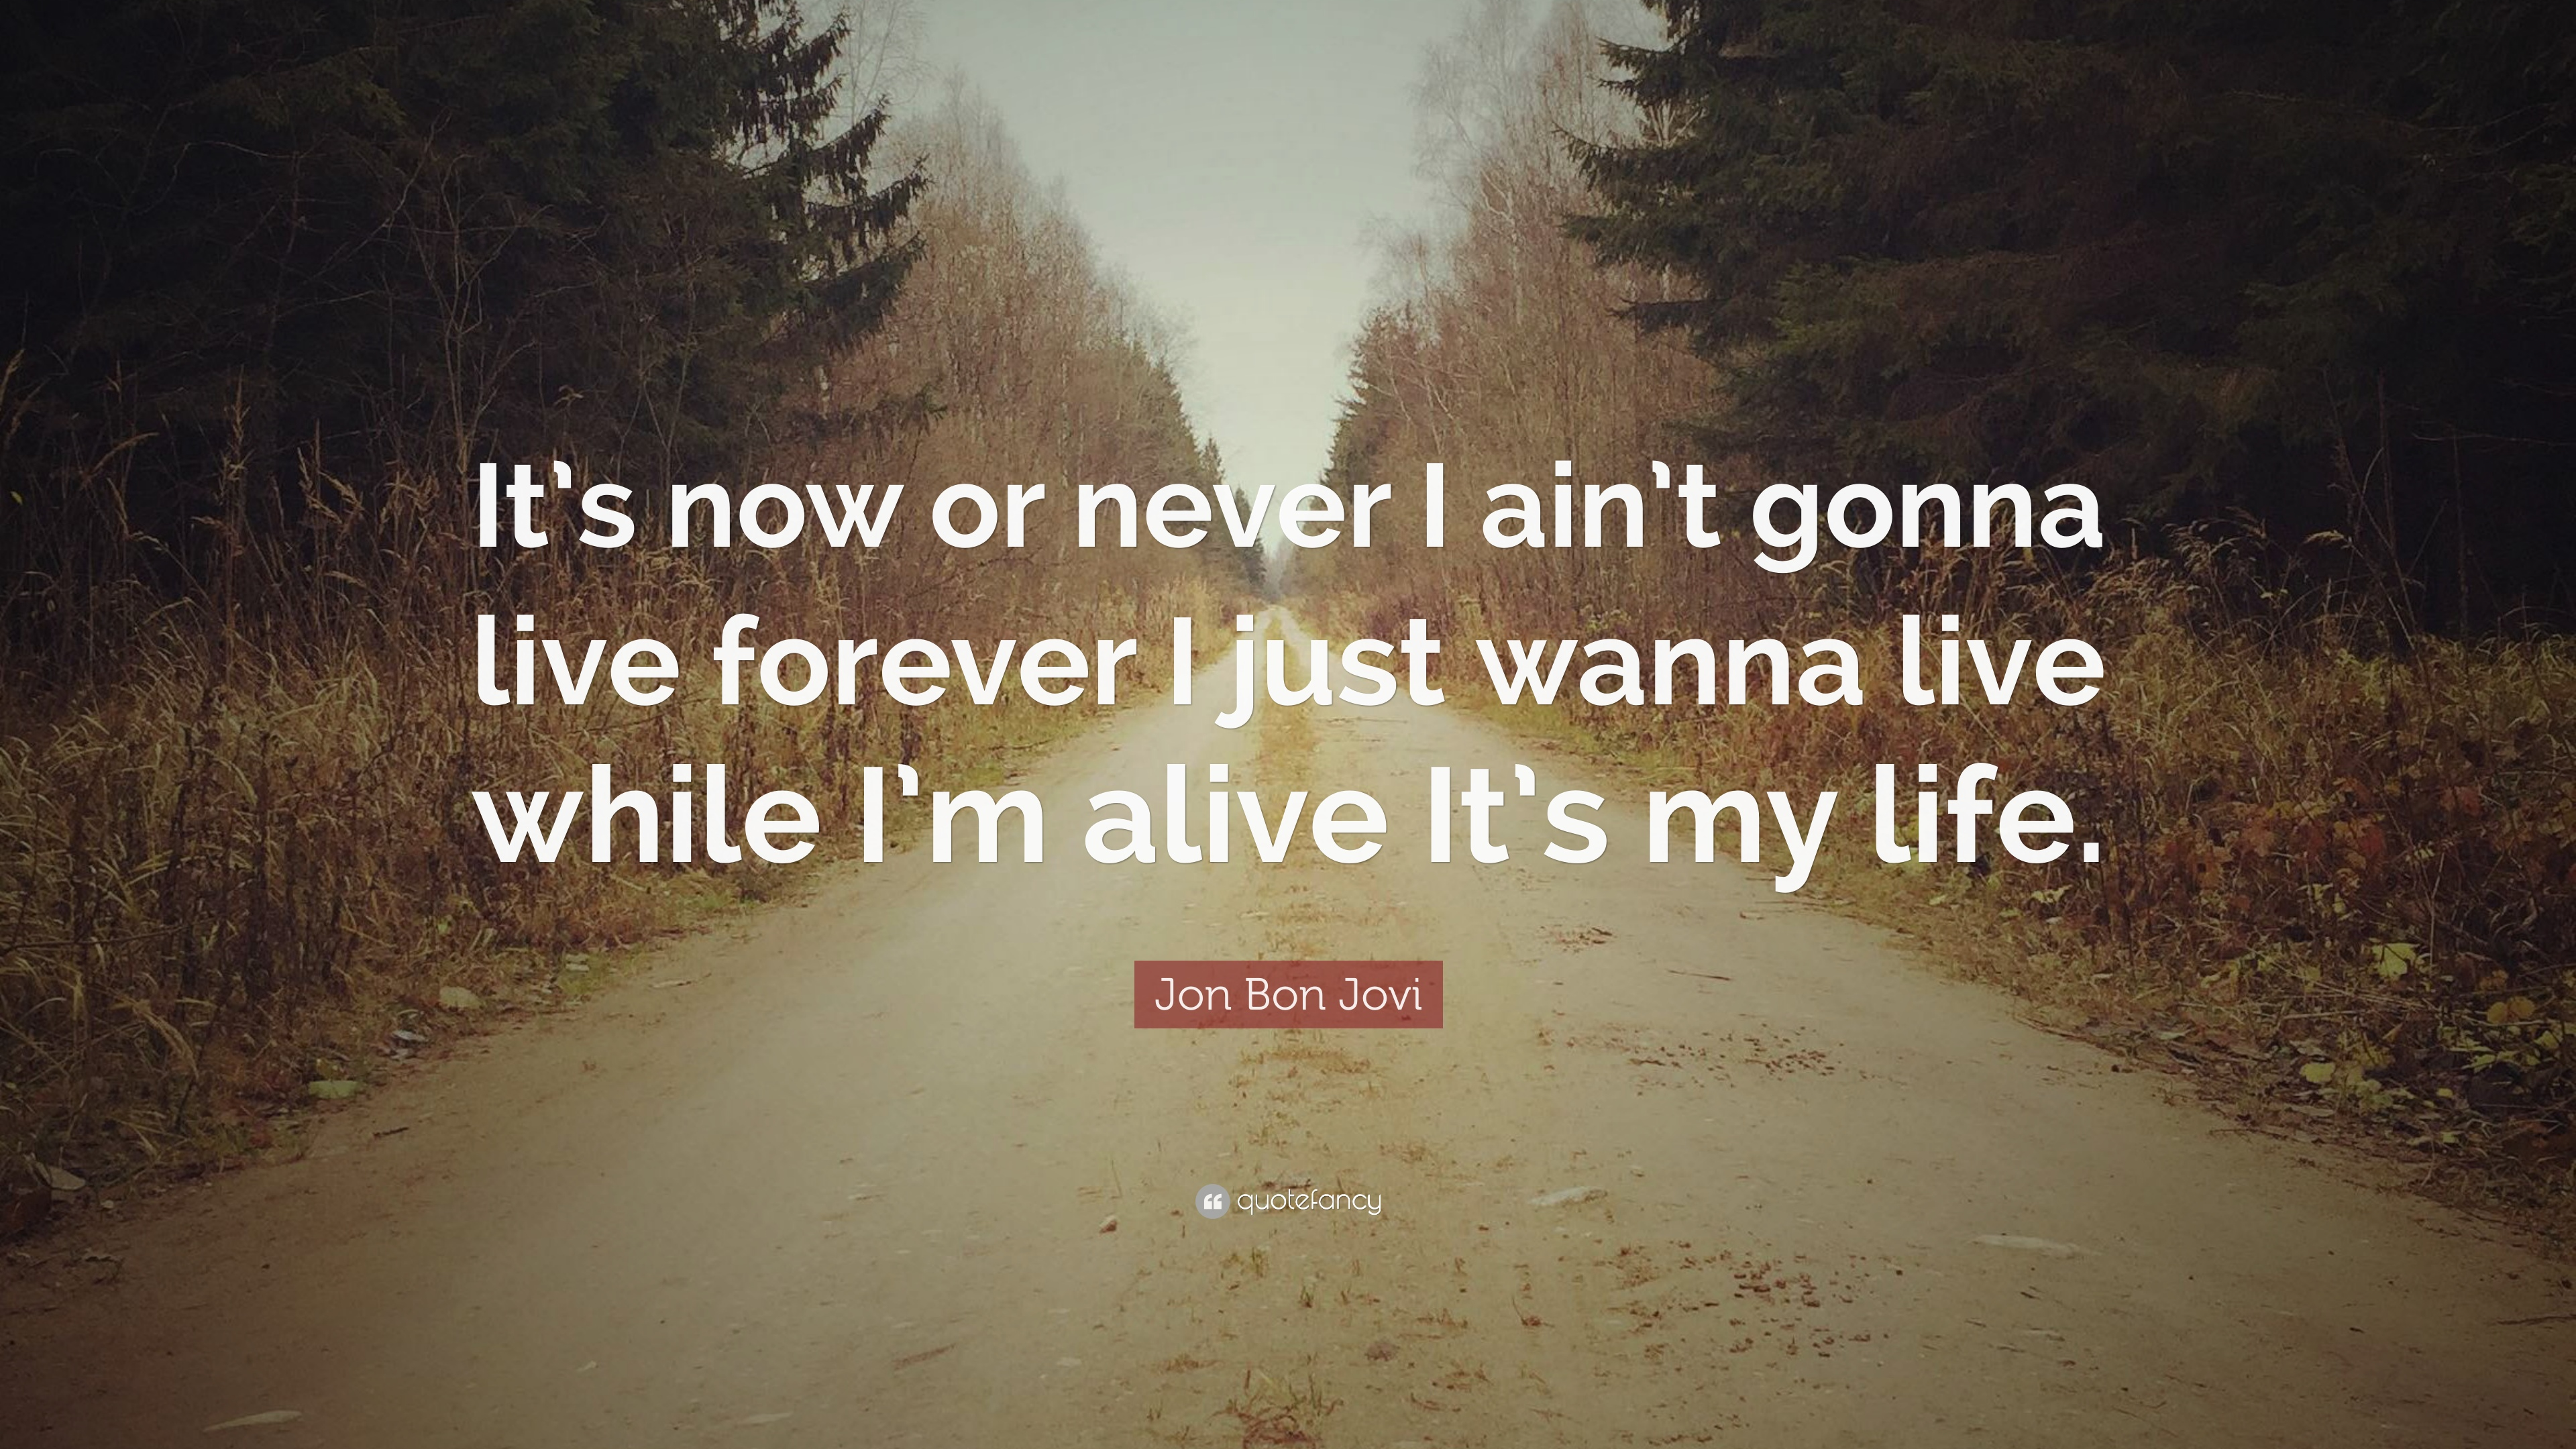 Jon Bon Jovi Quote It S Now Or Never I Ain T Gonna Live Forever I Just Wanna Live While I M Alive It S My Life 12 Wallpapers Quotefancy